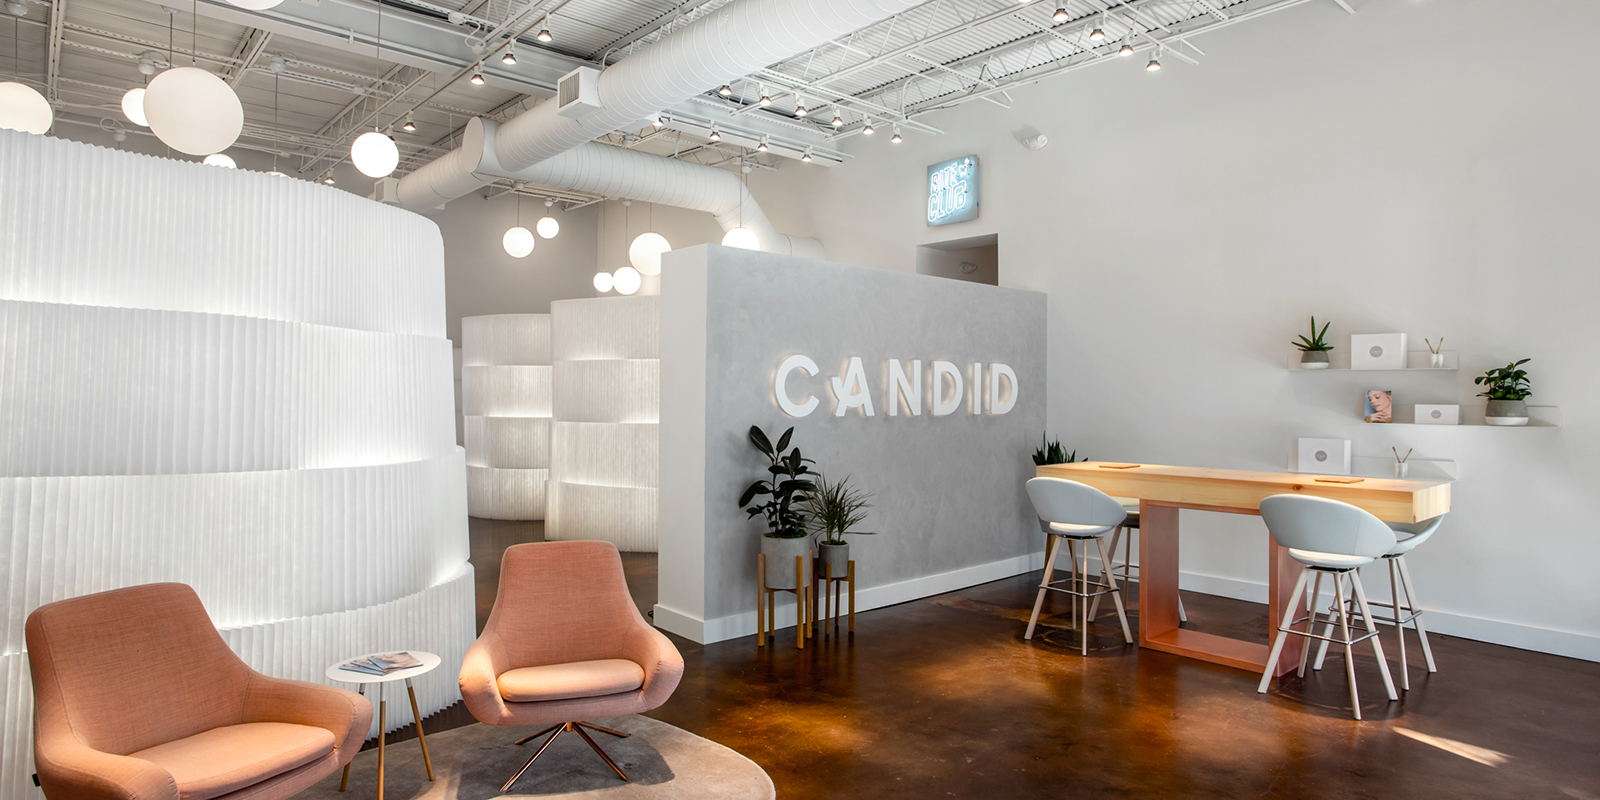 Candid™: Clear Aligners Online That Straighten Teeth At Home